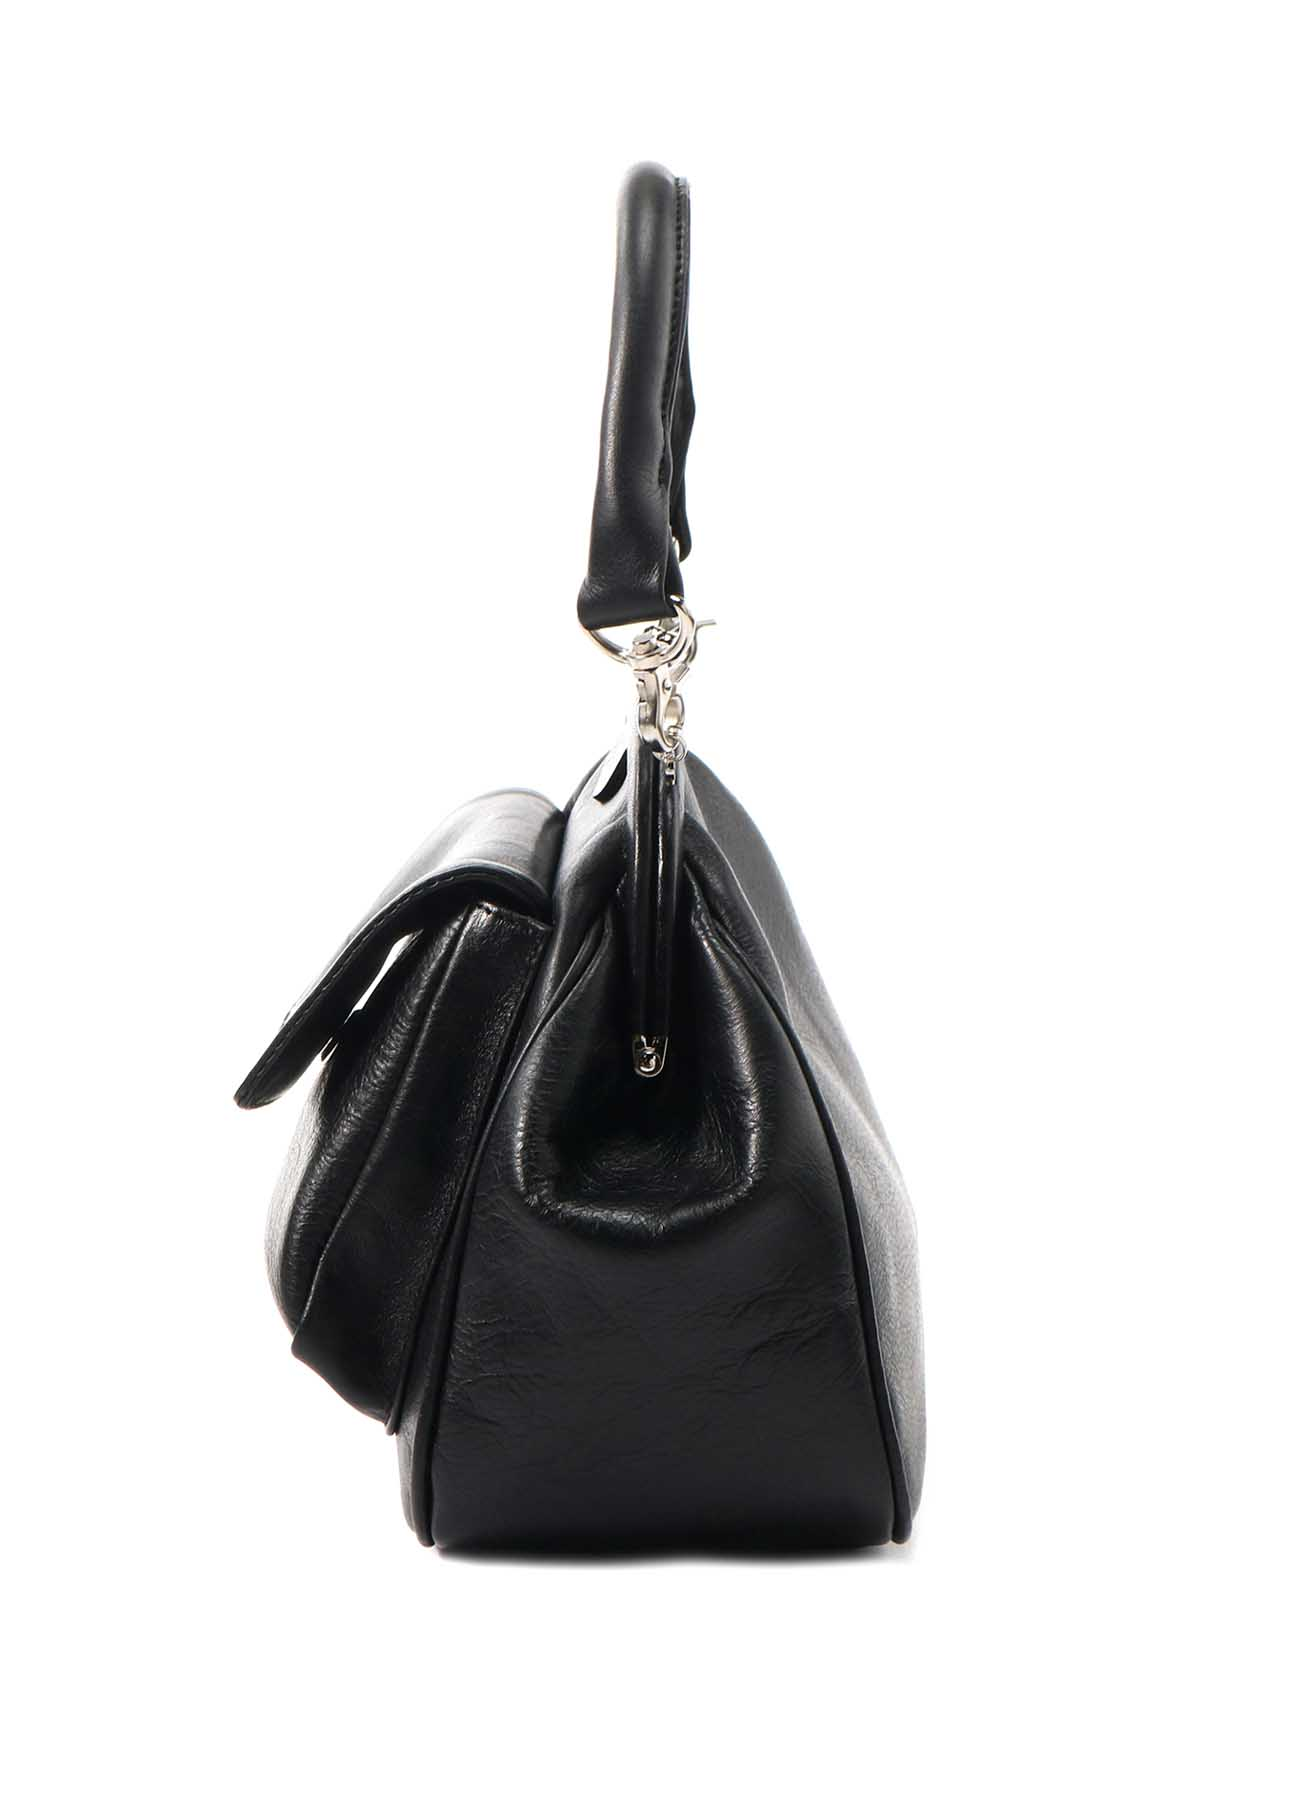 SEMI GLOSS LEATHER A CLASP PKT BAG S